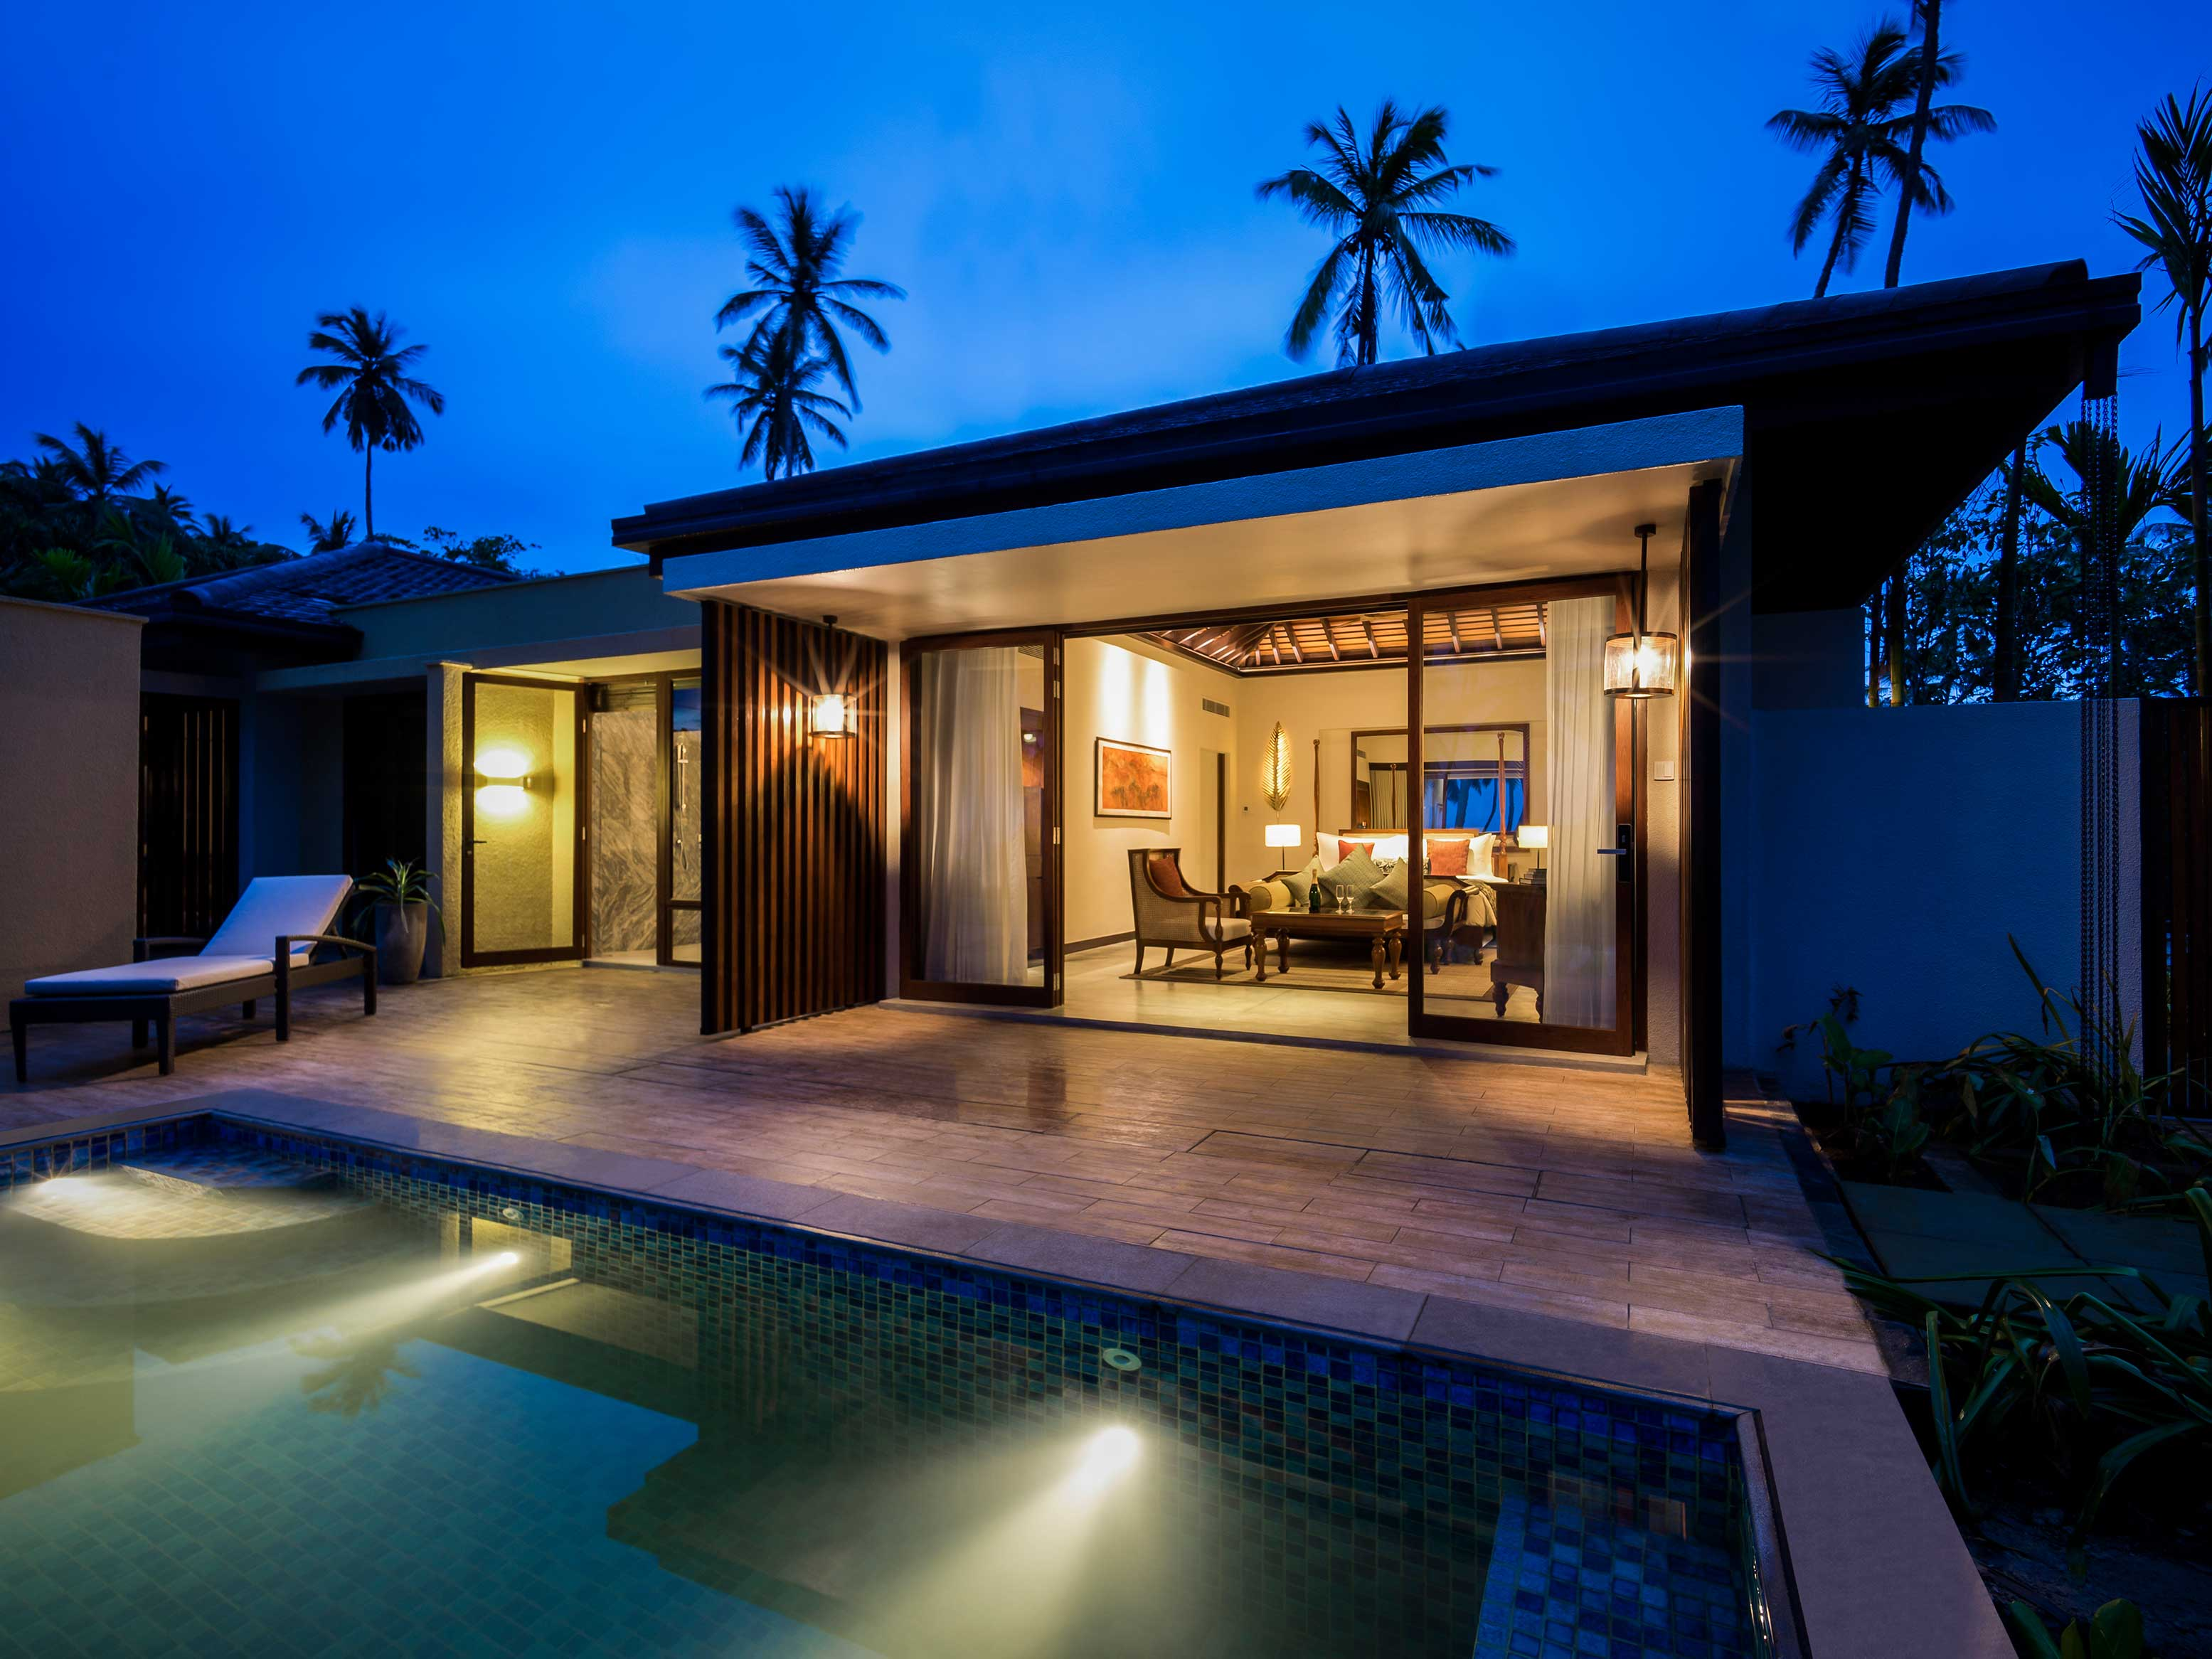 Anantara Peace Haven Tangalle Resort Garden Pool Villa Christmas & New Year 2017 Offers In Goa, Ladakh & More